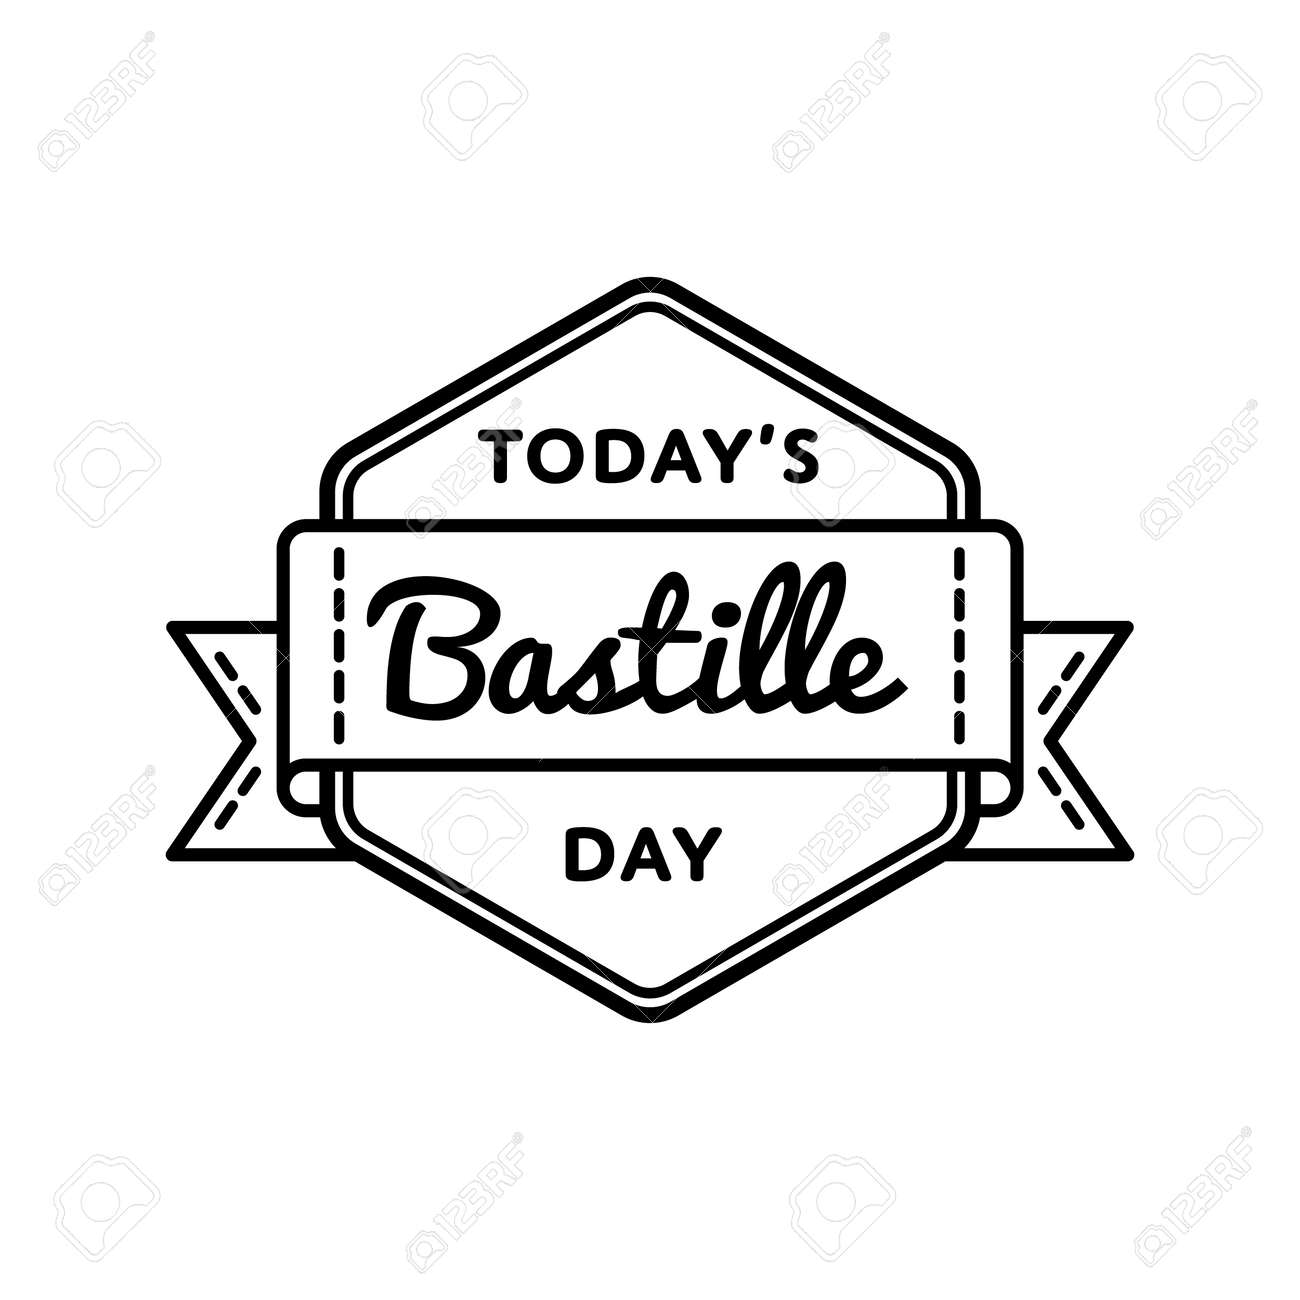 Today bastille day greeting emblem royalty free cliparts vectors today bastille day greeting emblem stock vector 77493163 m4hsunfo